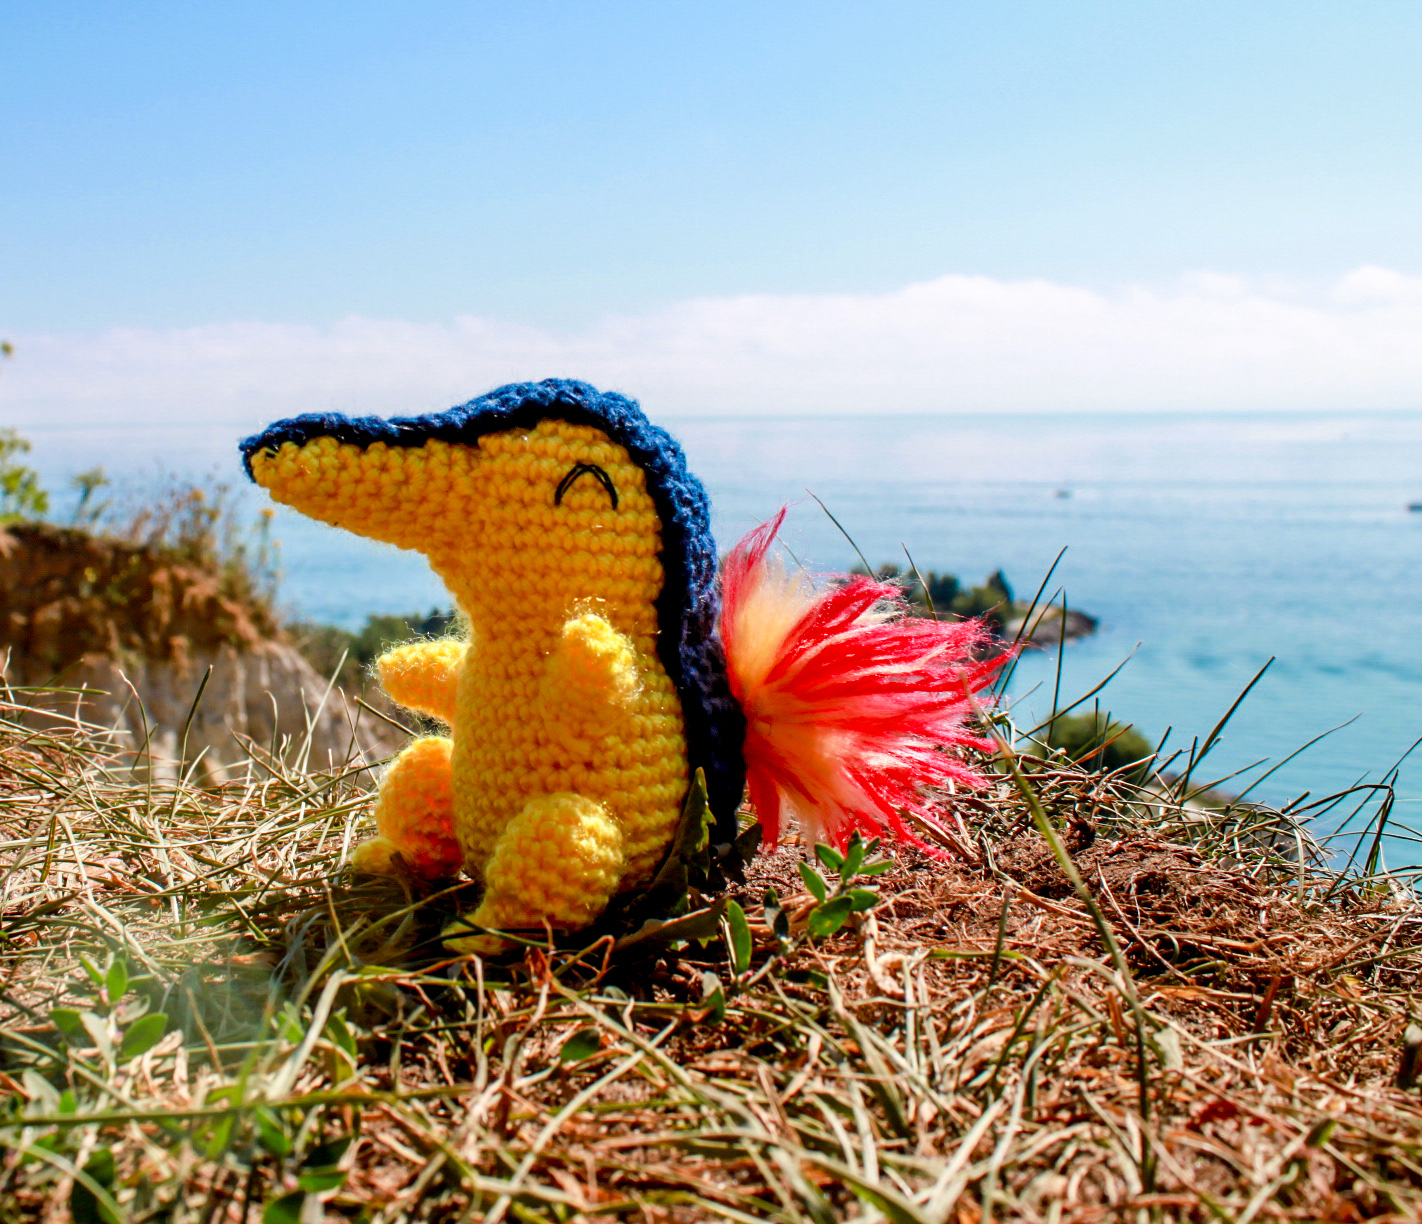 Cyndaquil Amigurumi at Scarborough Bluffs